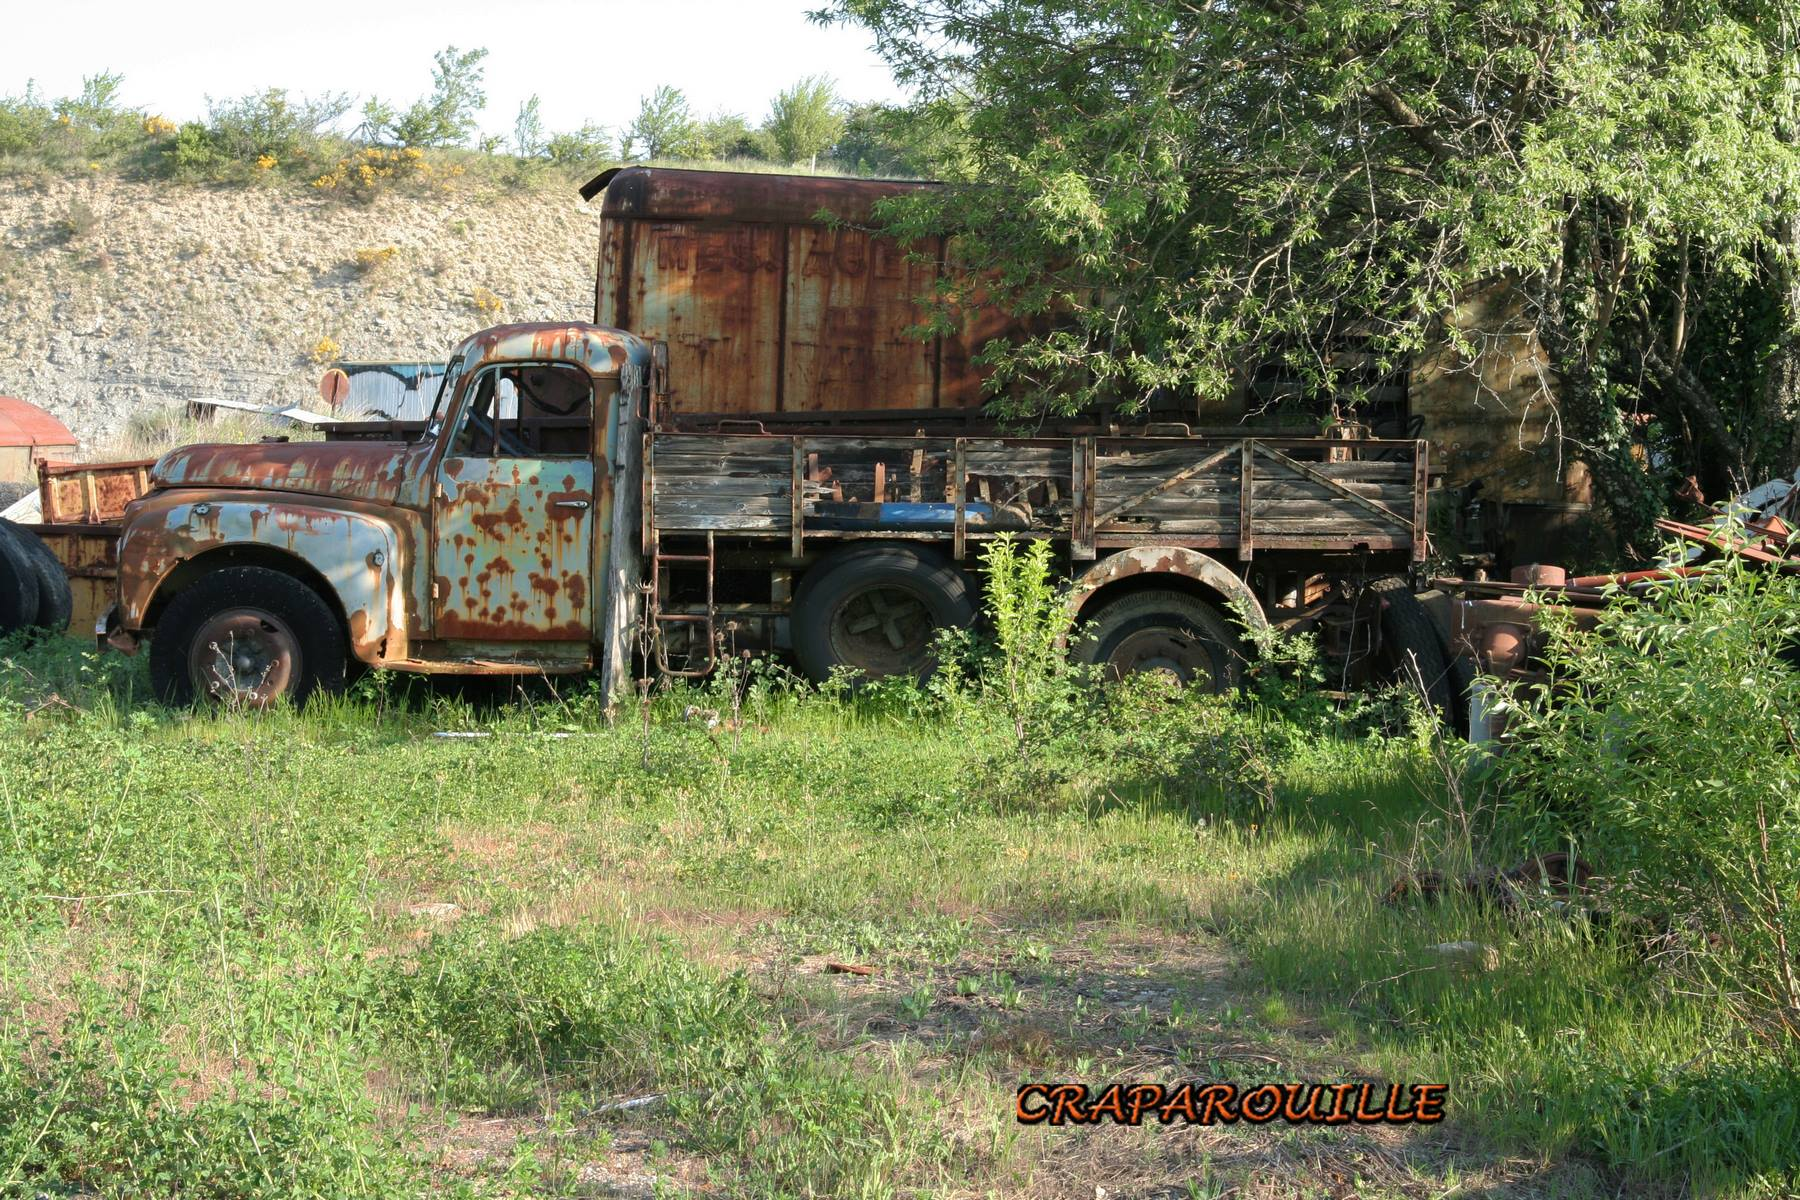 Photography-Diamonds-in-Rust-Craparouille-135